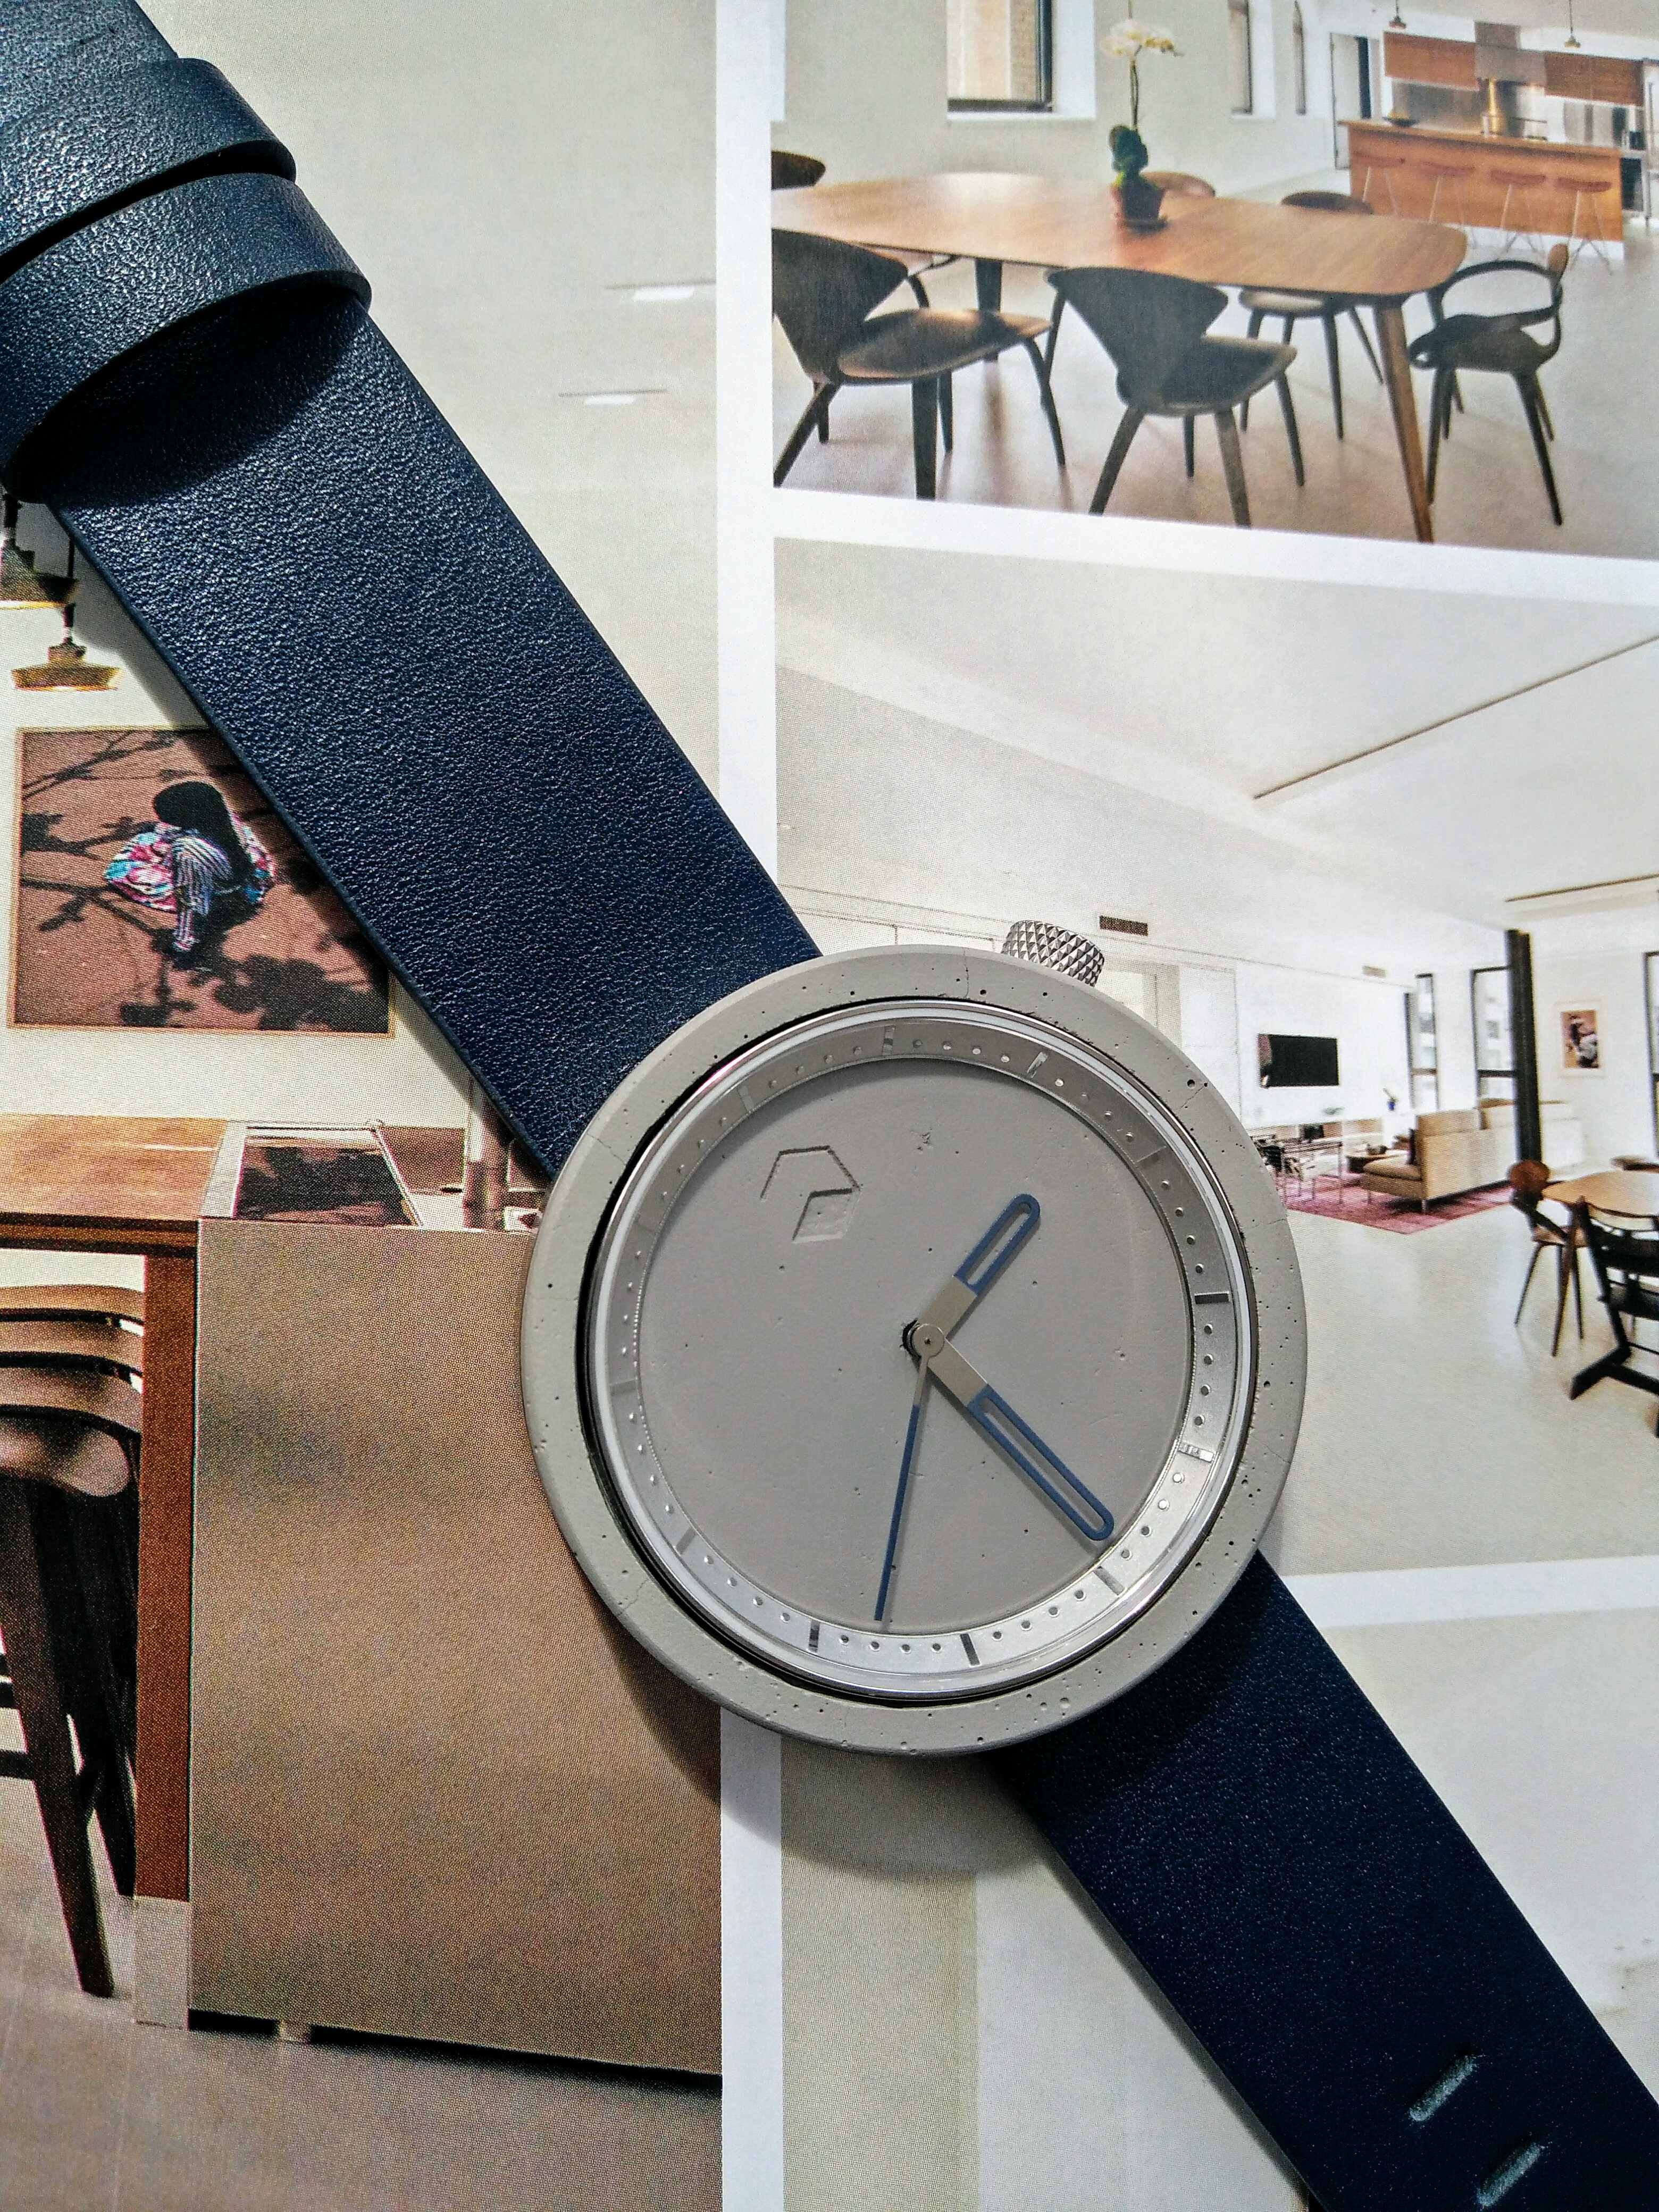 Aggregate watches review. Masonic watches. Concrete Watches